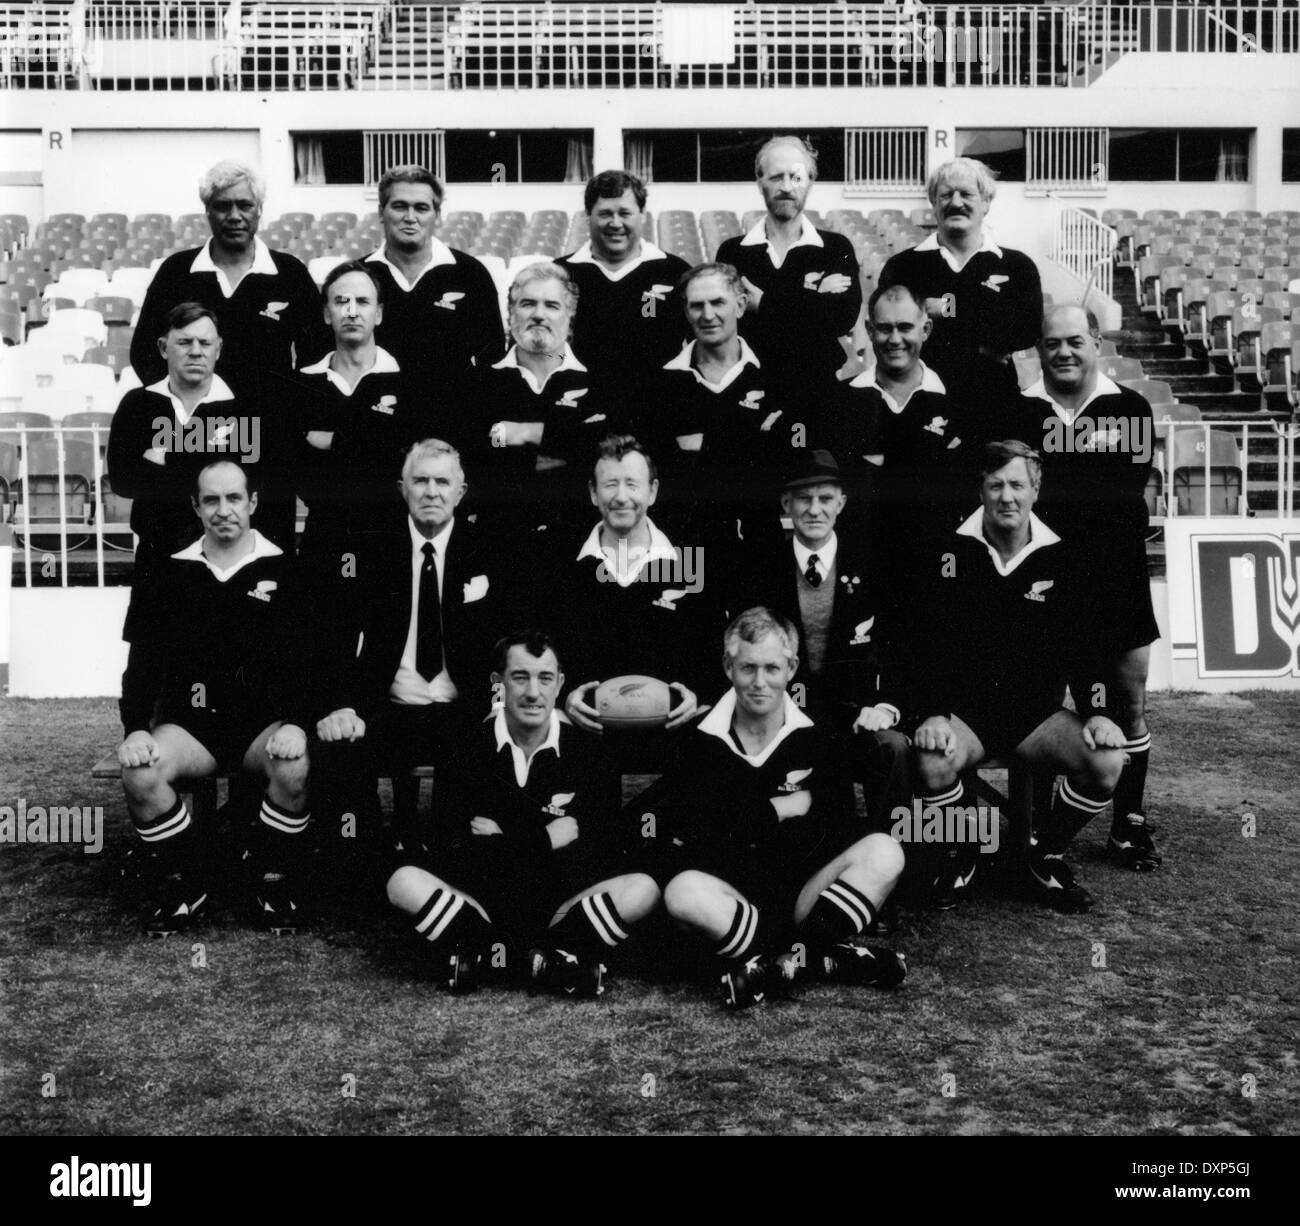 Old Rugby Team: Old Rugby Stock Photos & Old Rugby Stock Images